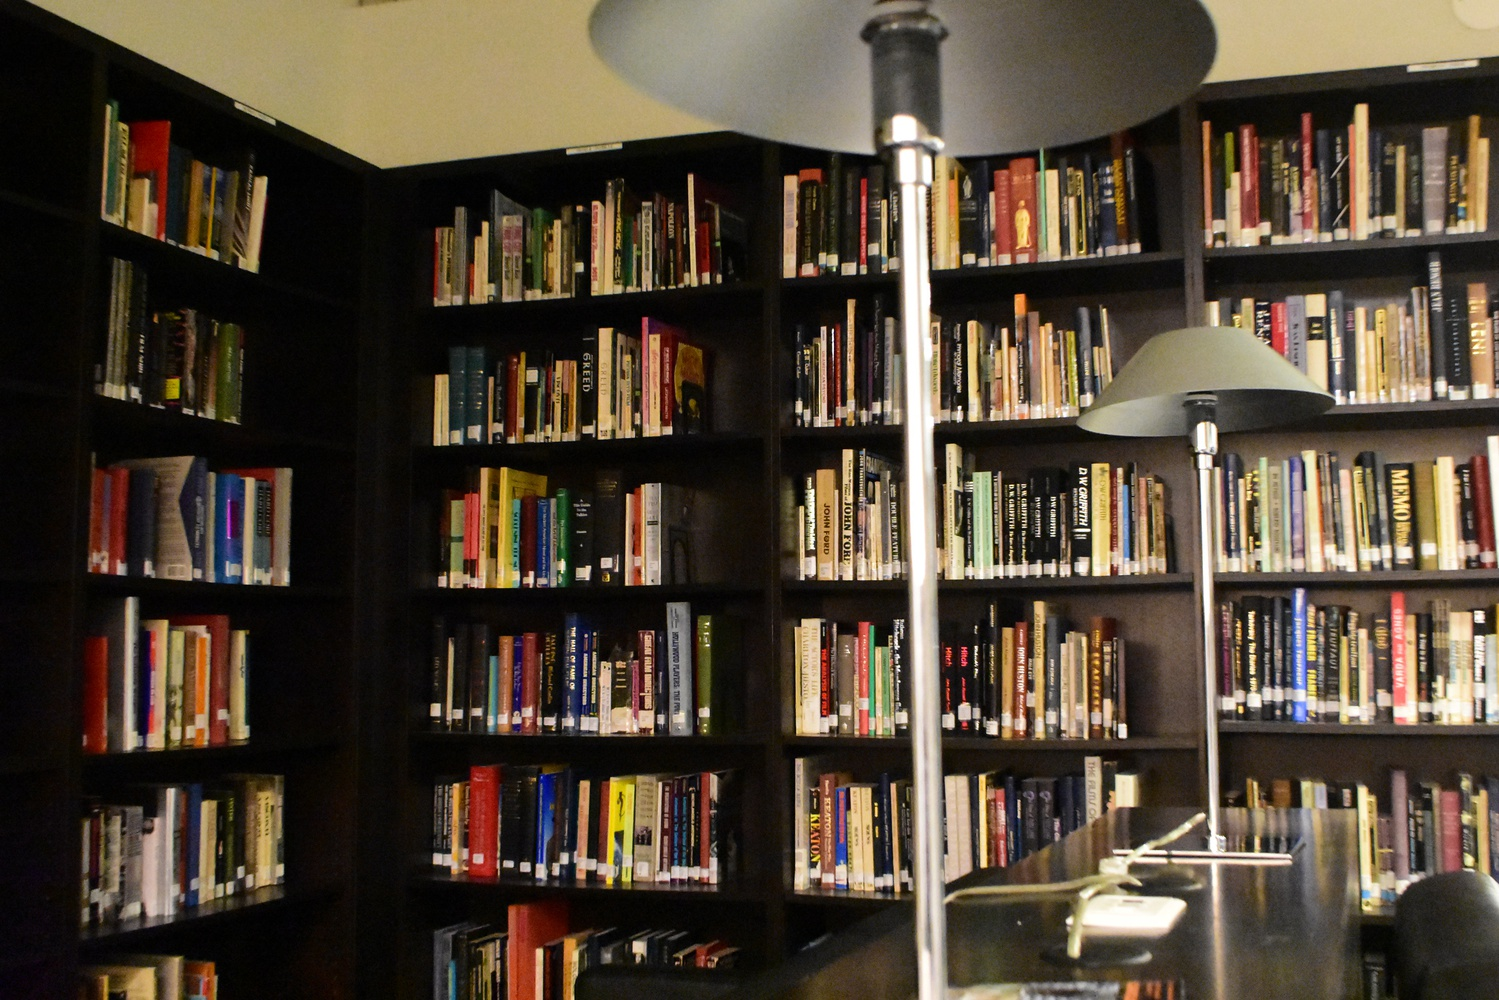 The Film Studies Library is part of the Department of Visual and Environmental Studies and is located on the fourth floor of Sever Hall.